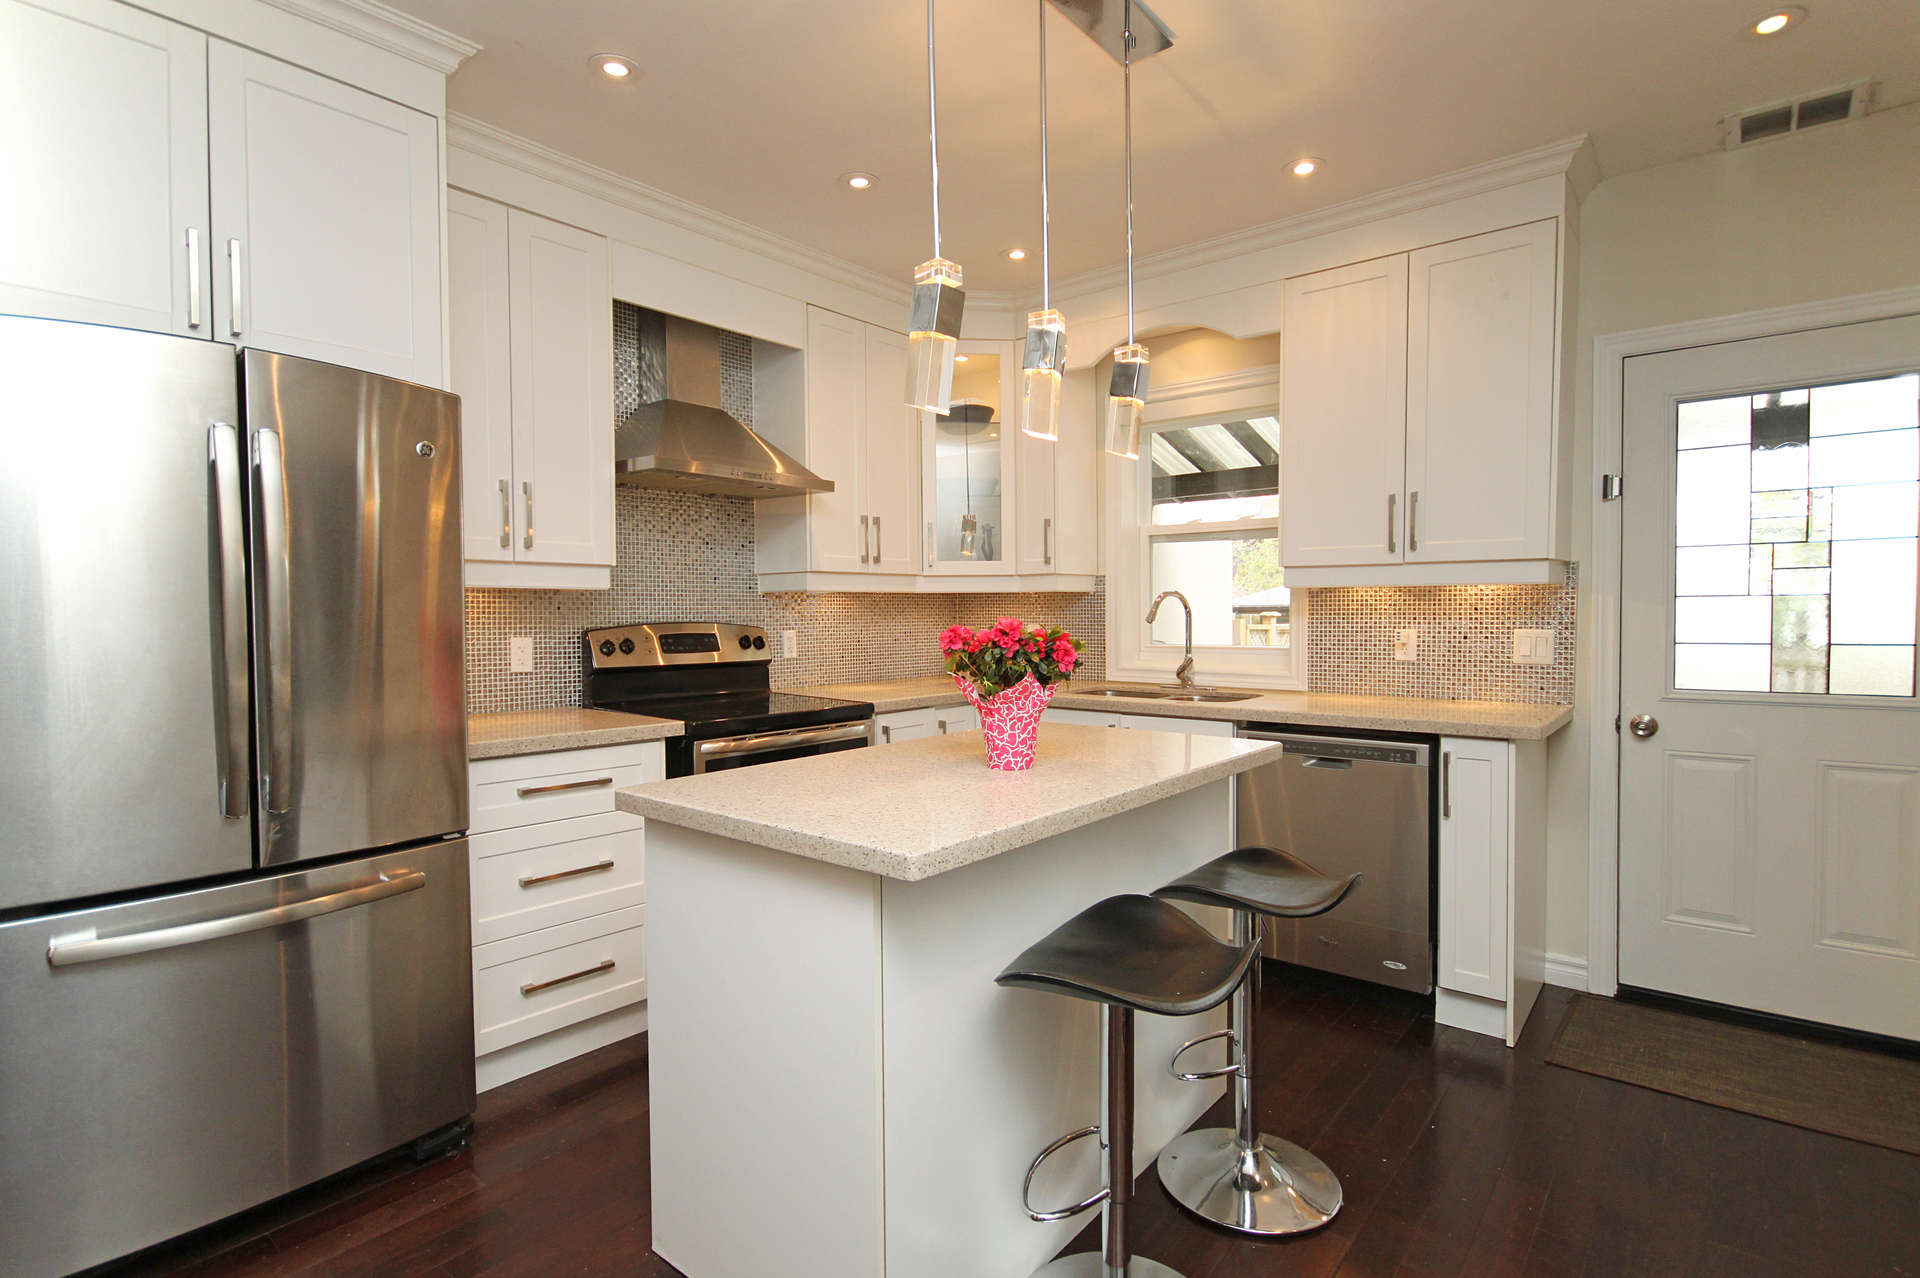 Kitchen at 241 Milverton Boulevard, Danforth, Toronto